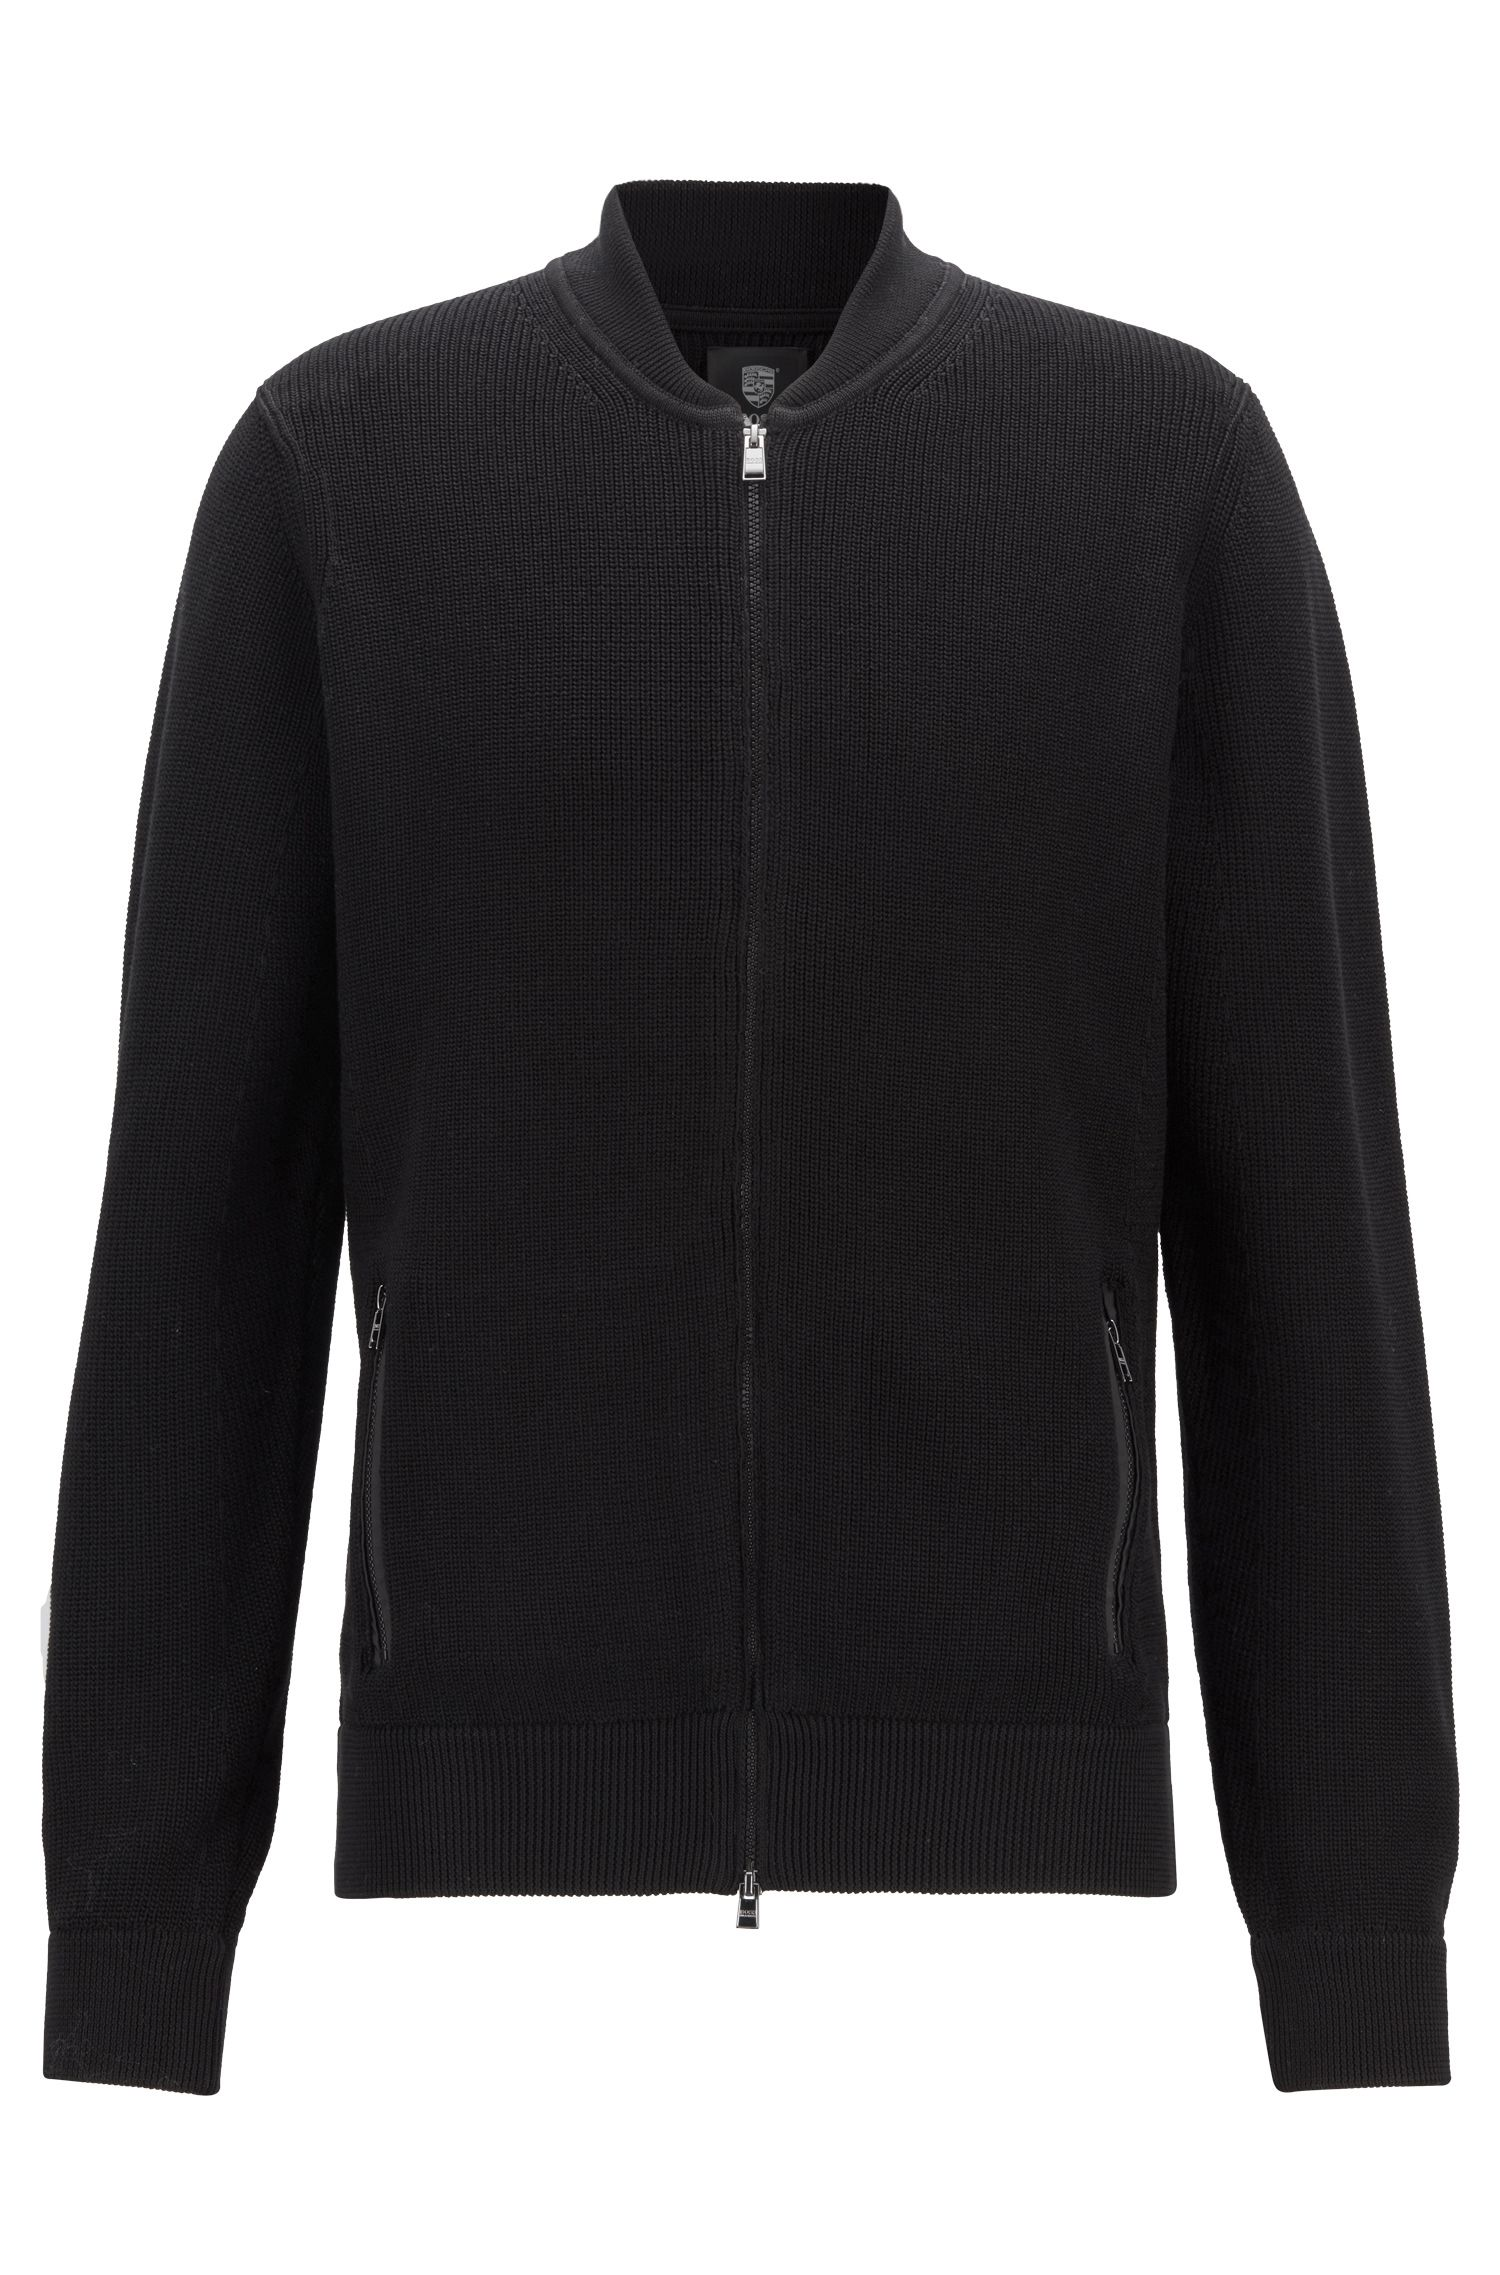 Knitted jacket in mercerised cotton, Black